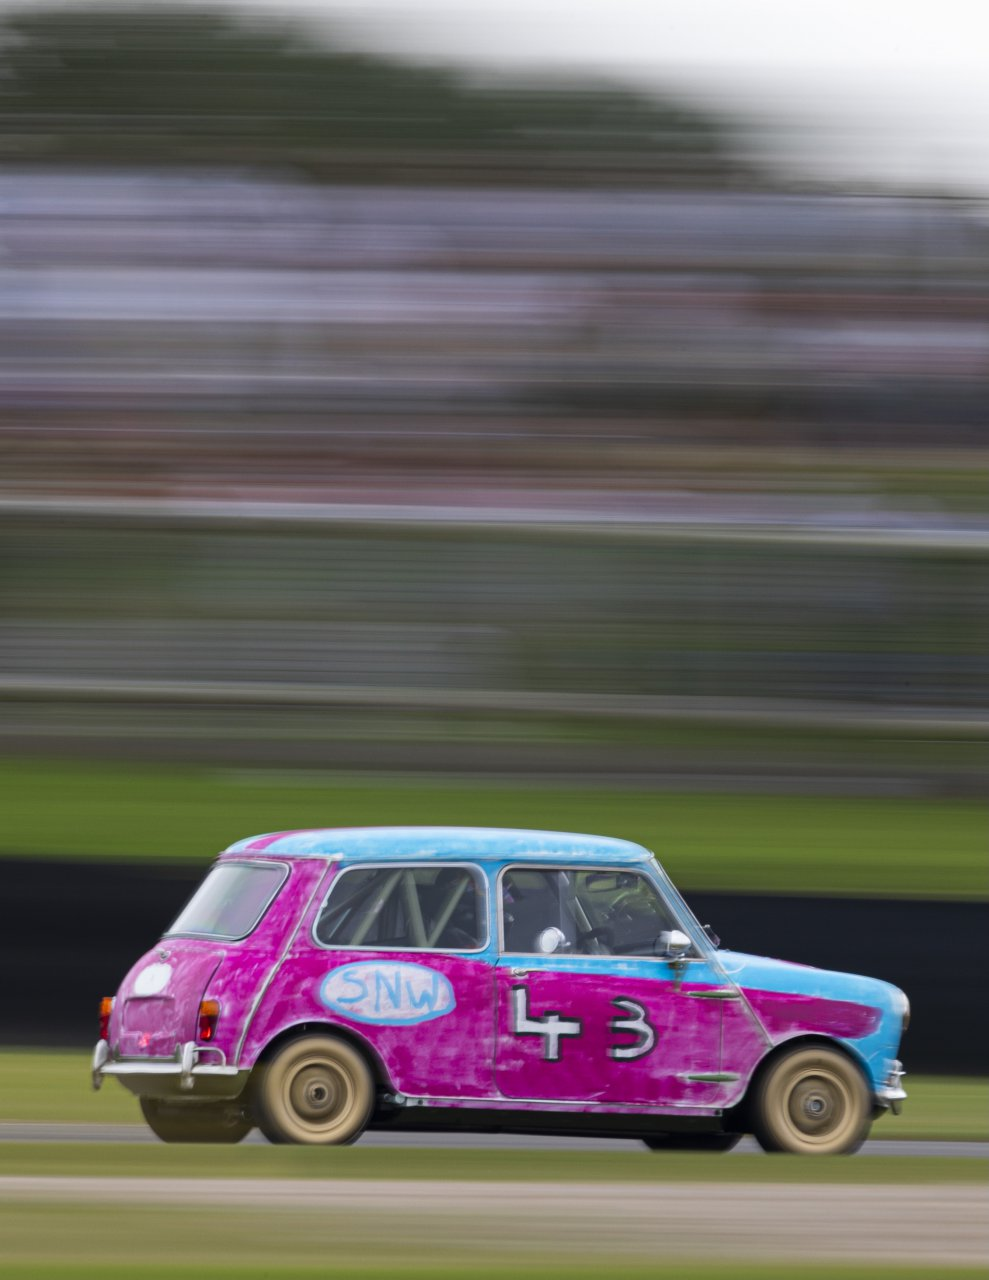 Goodwood, 9-year-old delighted to see his design win Goodwood race, ClassicCars.com Journal